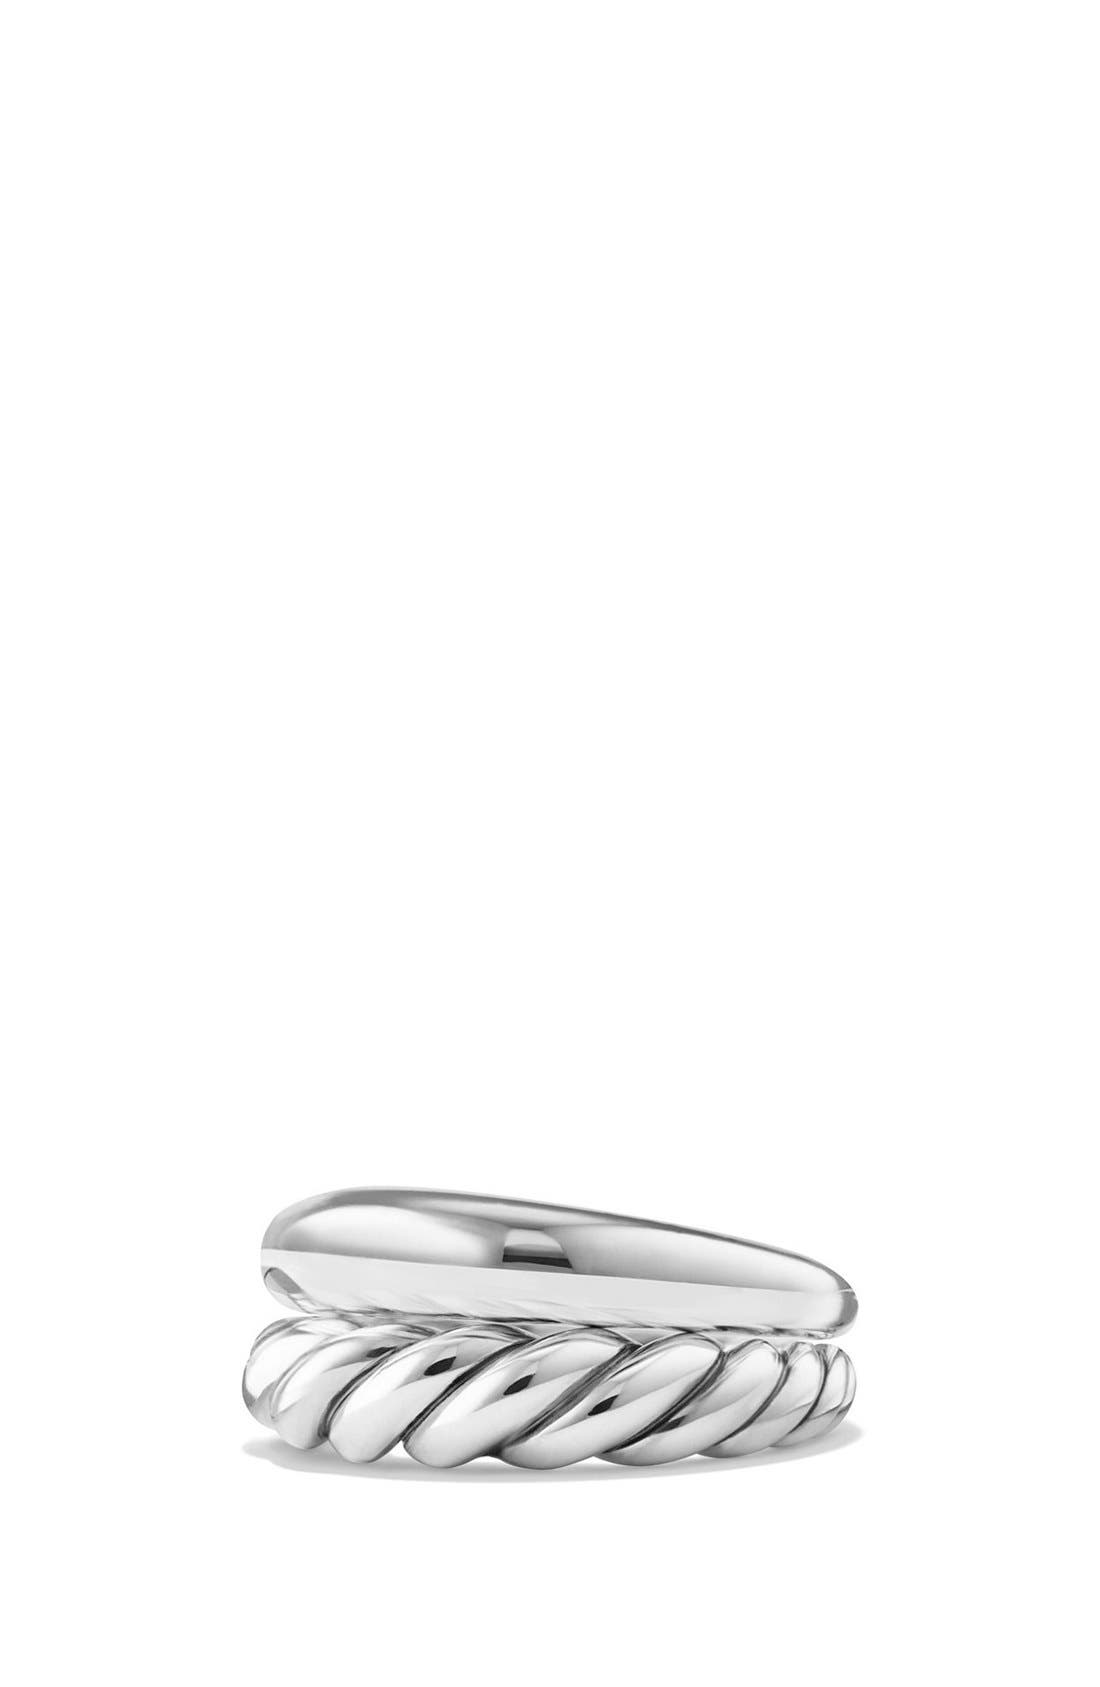 David Yurman 'Pure Form' Sterling Silver Stacking Rings (Set of 2)